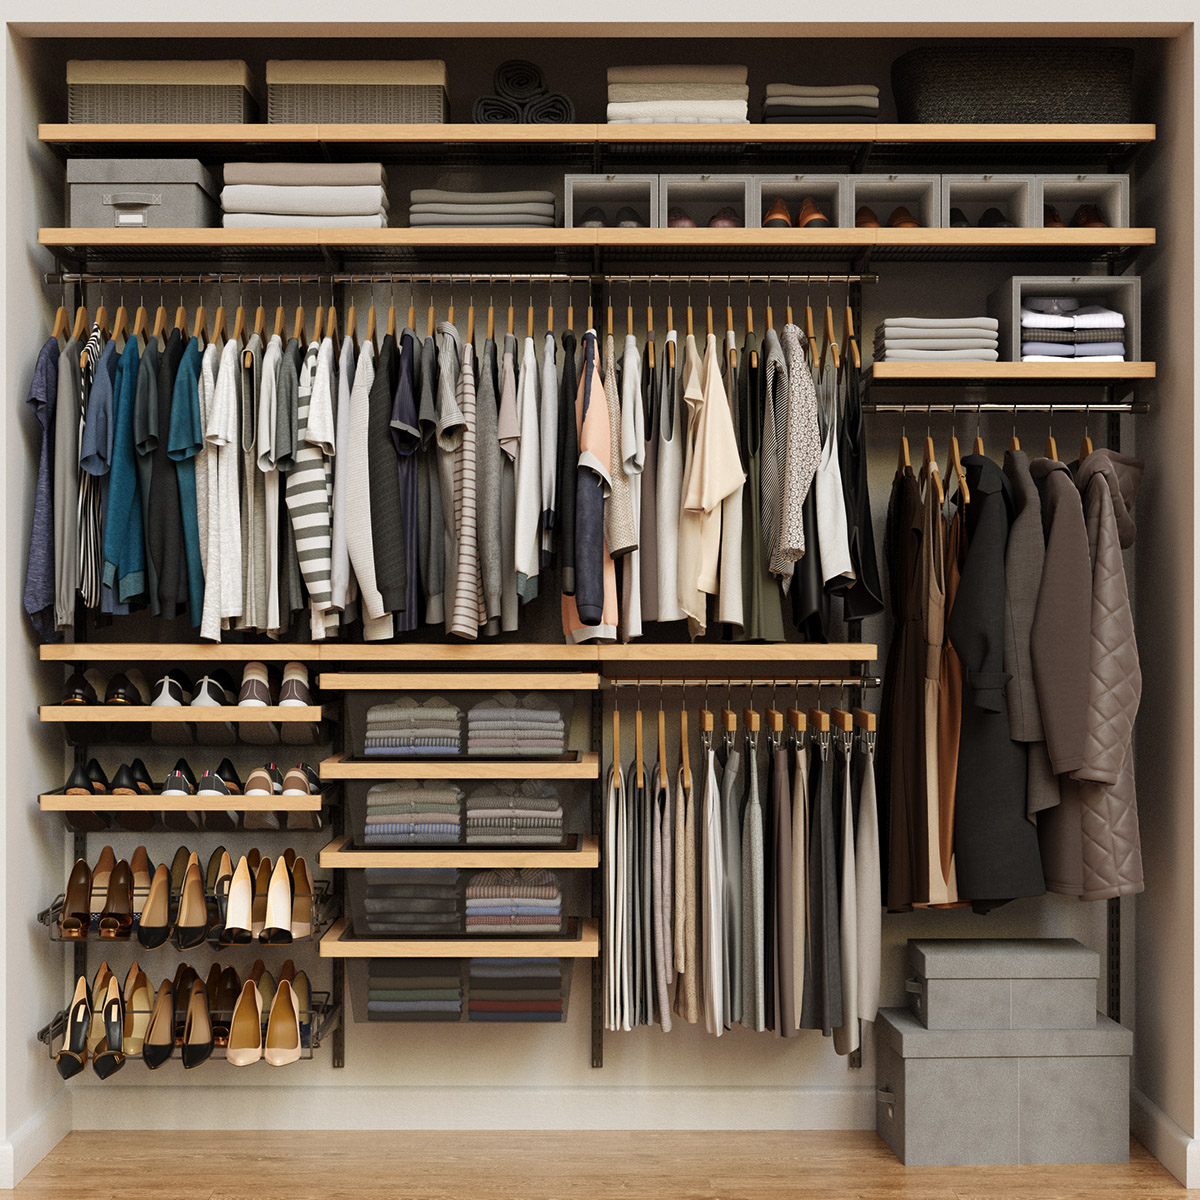 Elfa Décor 8' Graphite & Birch Reach-In Closet